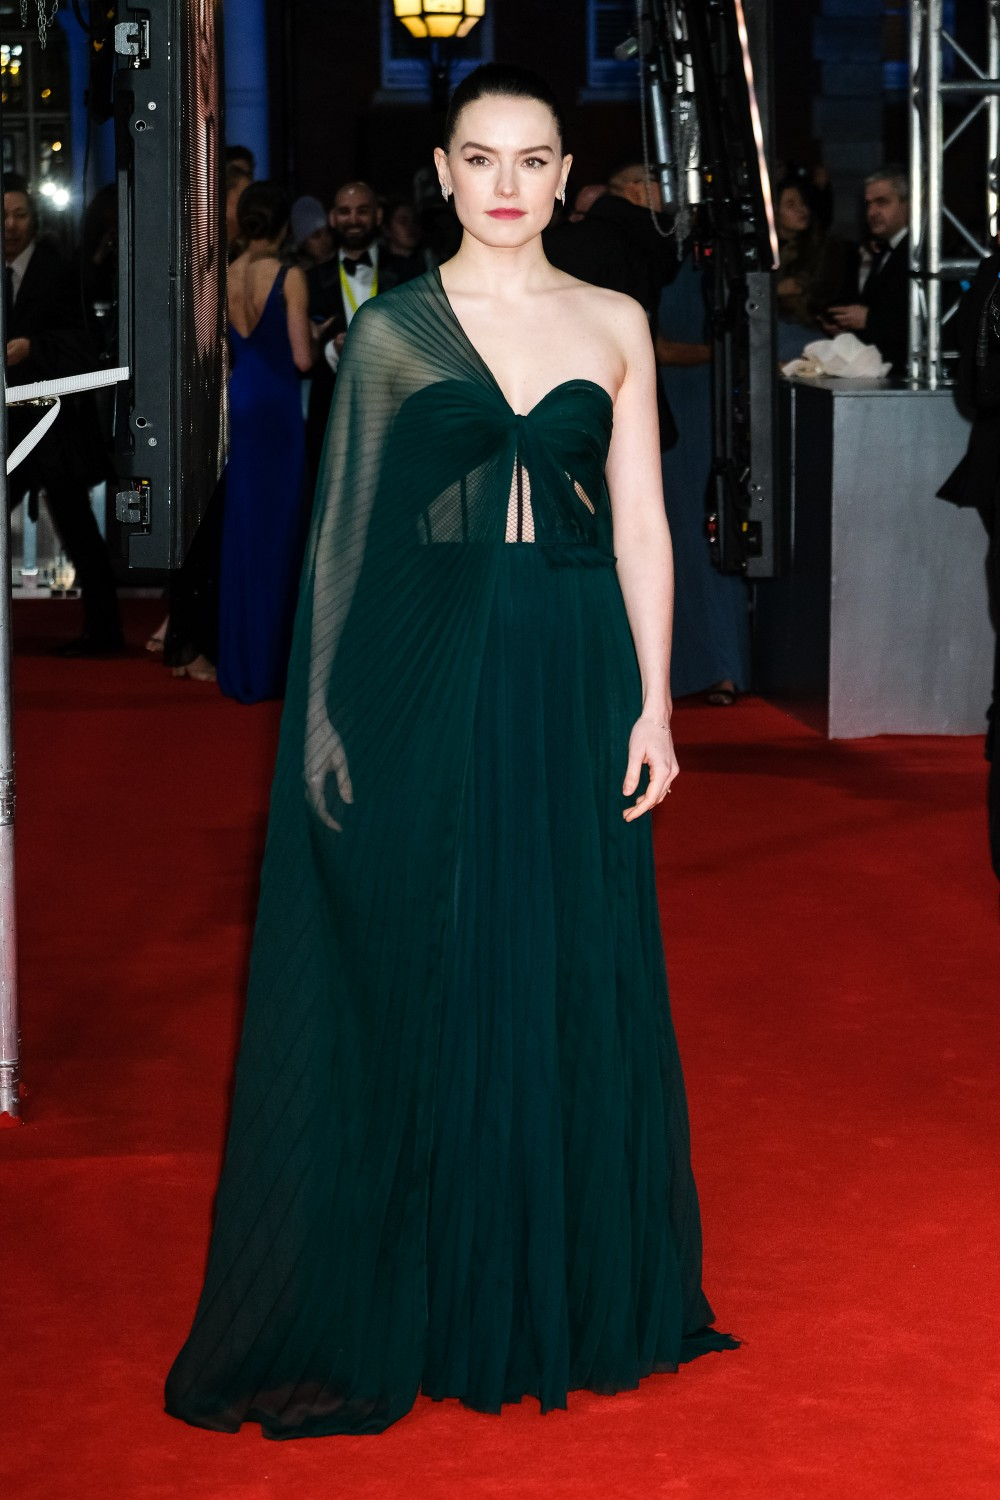 Daisy Ridley attends the 2020 EE British Academy Film Awards on Sunday 2 February 2020